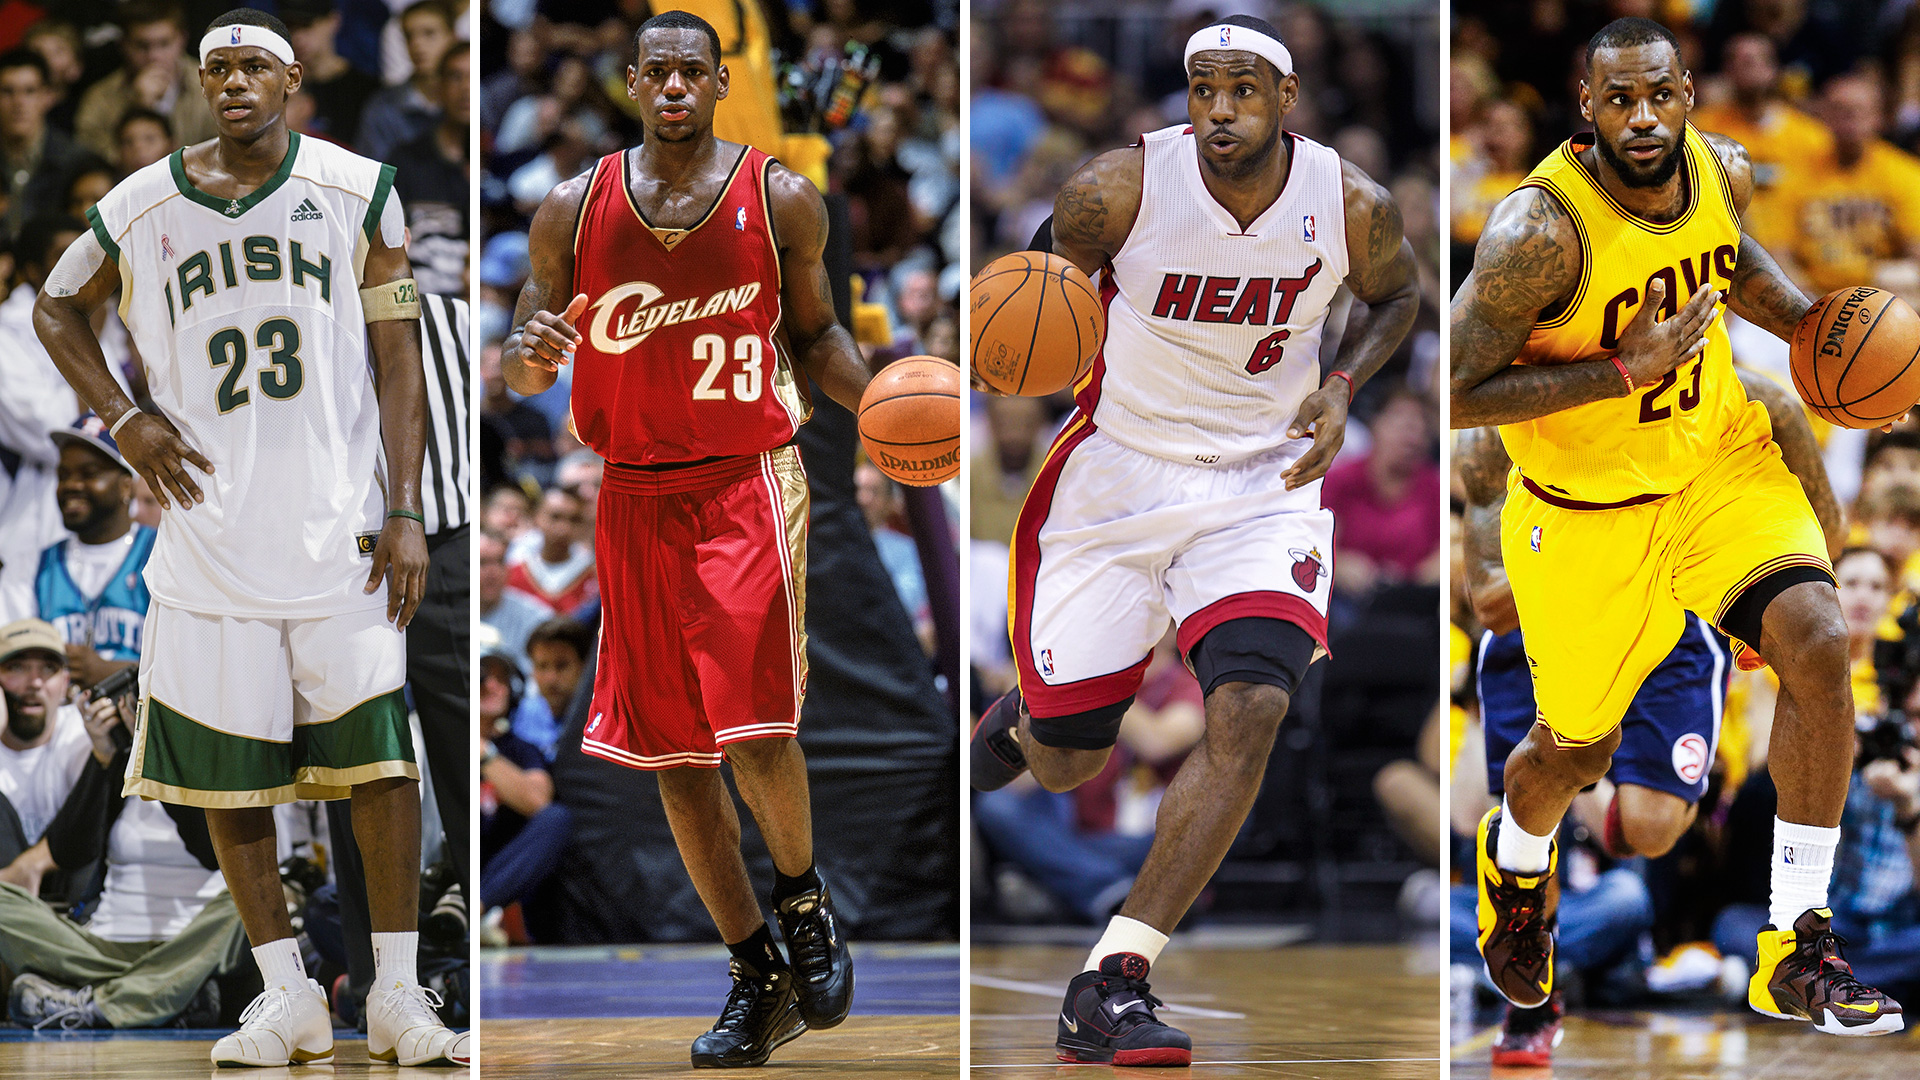 LeBron James ends the debate: He's the best basketball player ever | Other | Sporting News